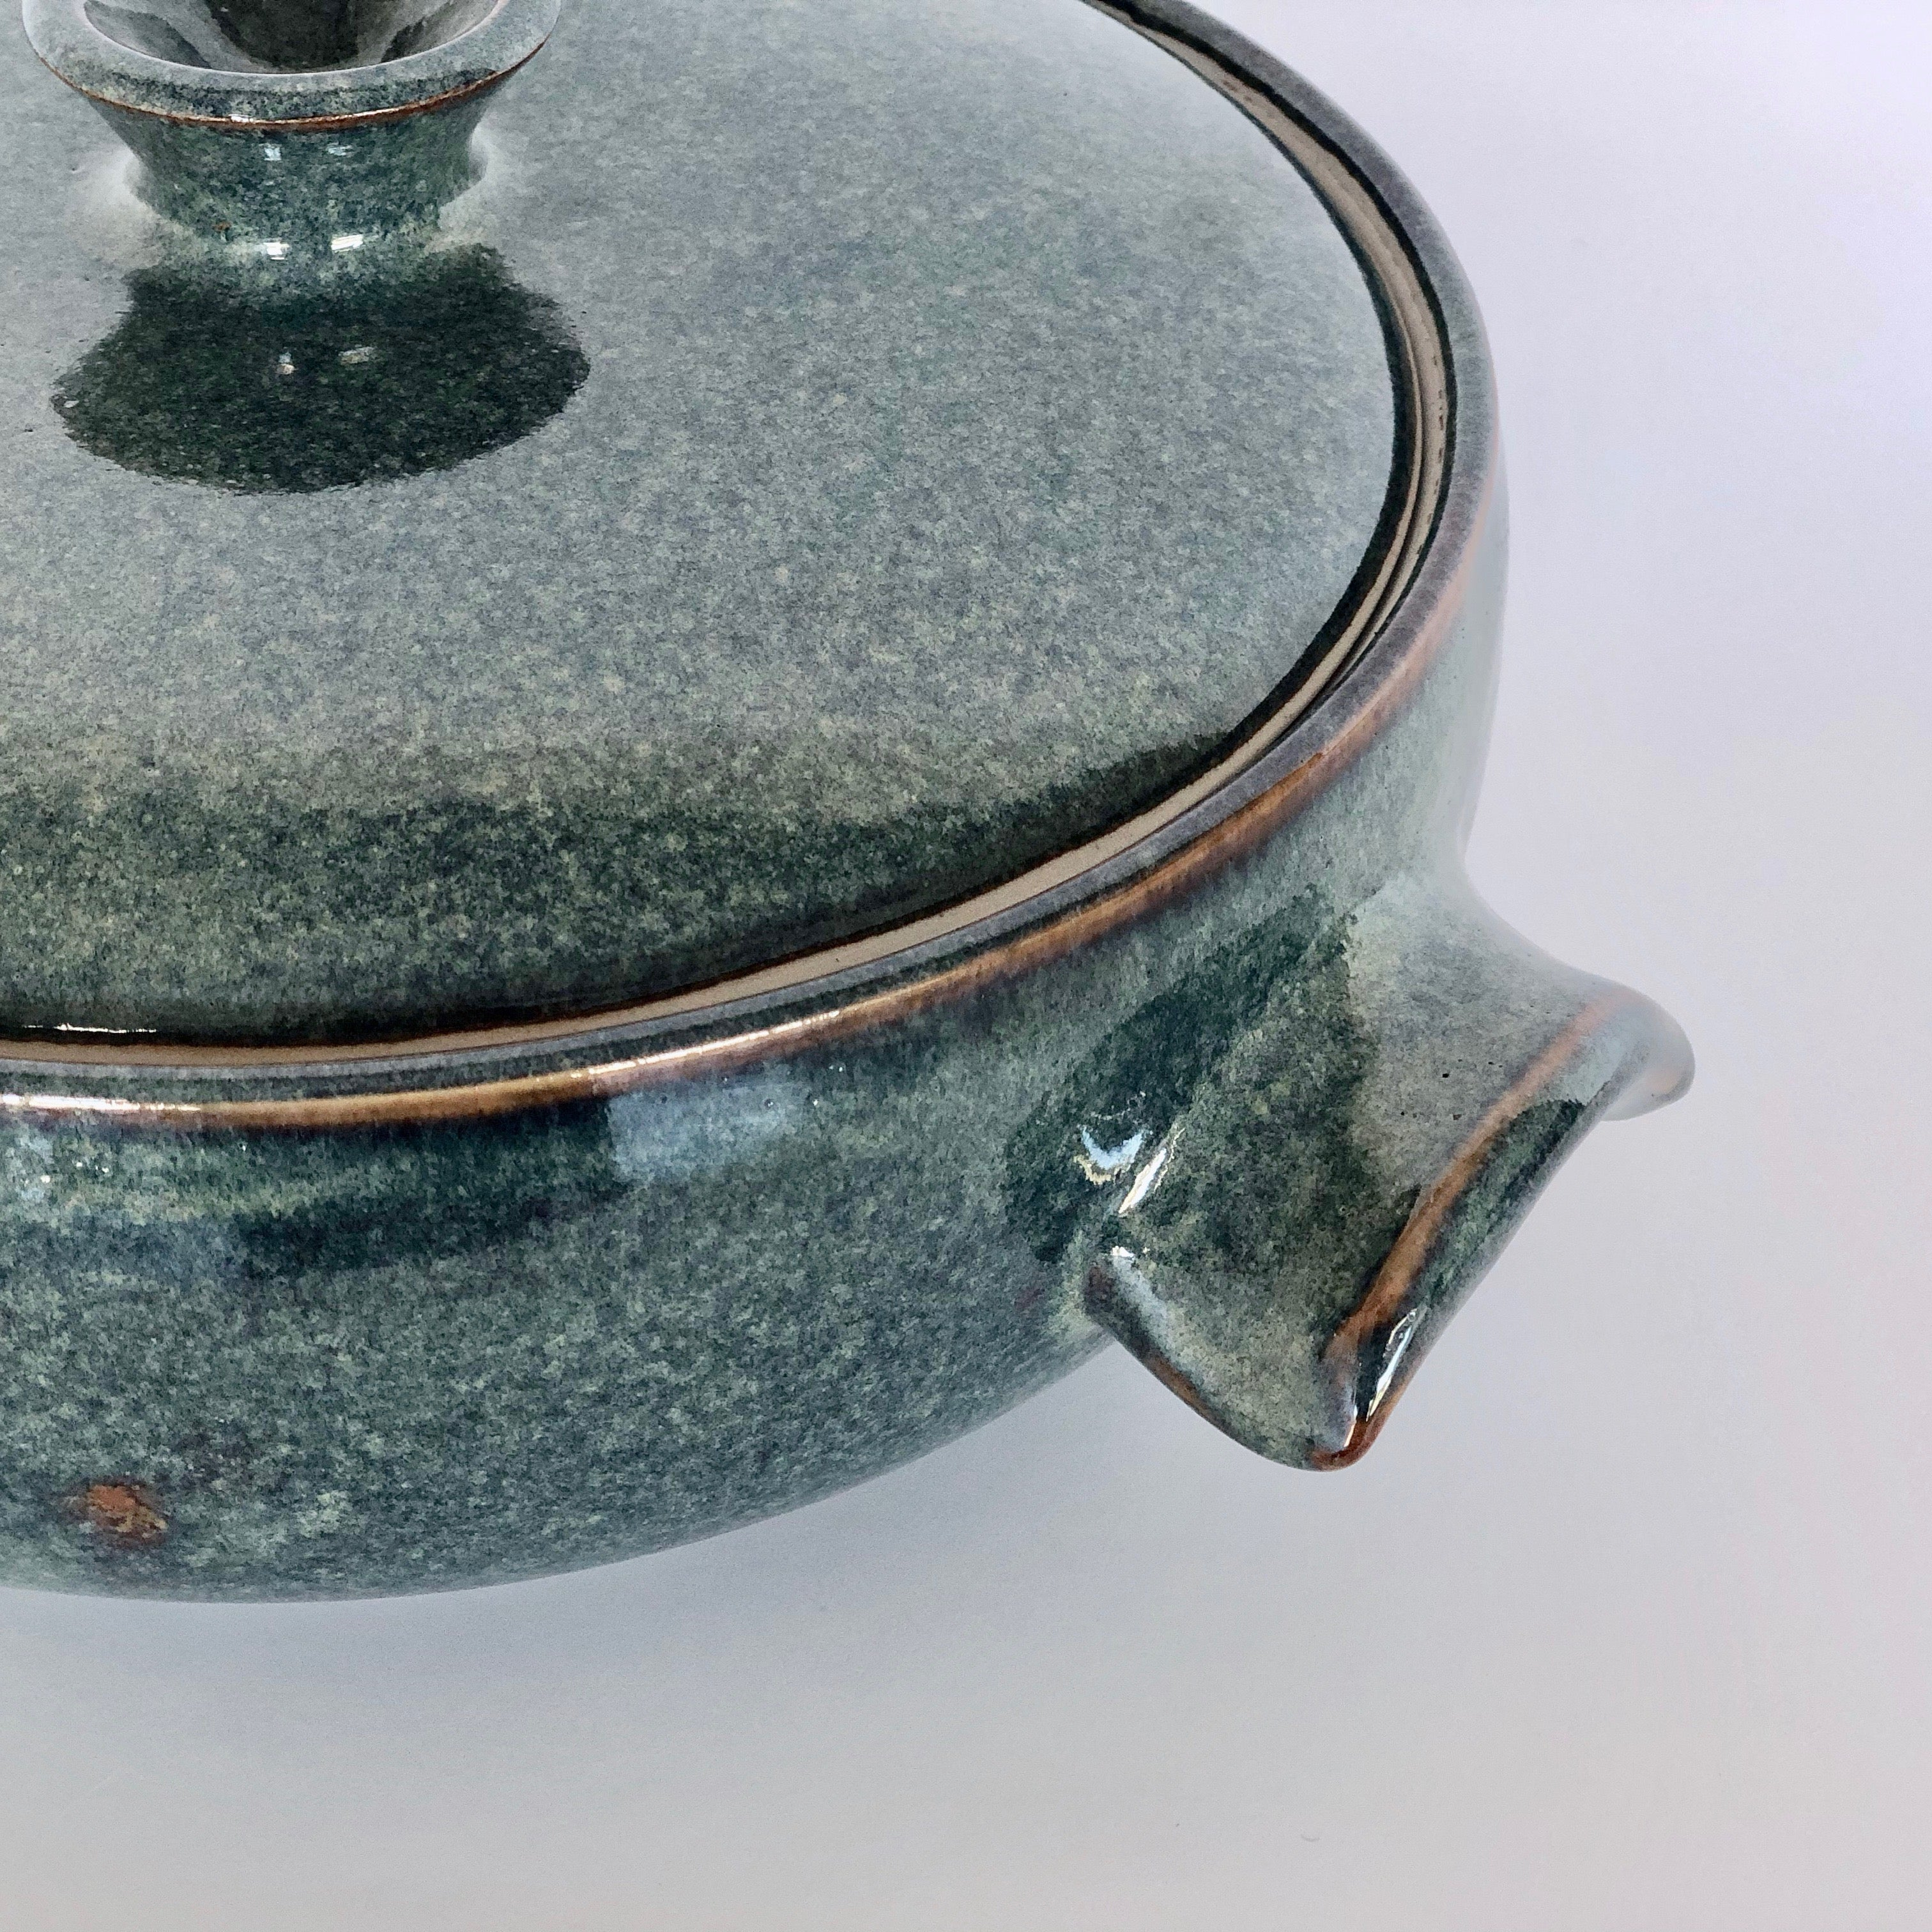 Stoneware Casserole Dish with Lid - Made in Melbourne